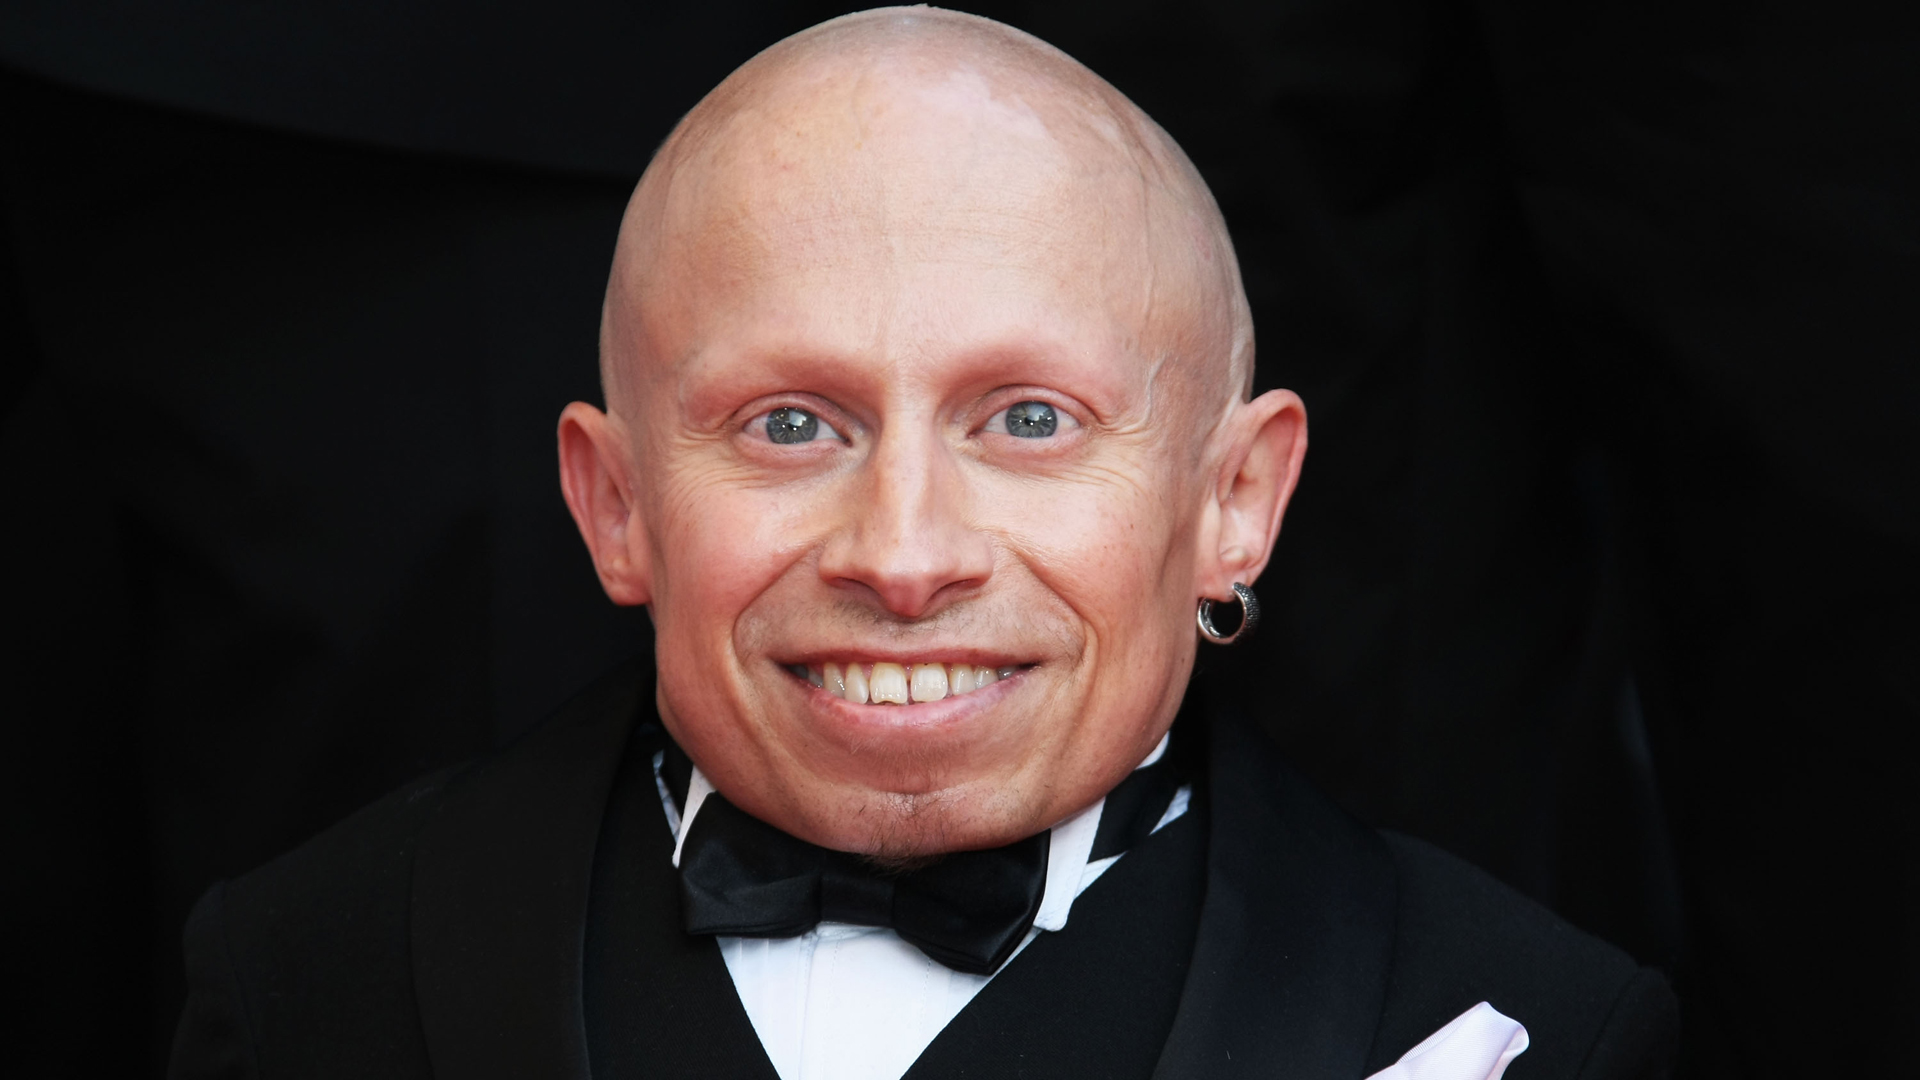 "In this file photo, actor Verne Troyer attends ""The Imaginarium Of Doctor Parnassus"" premiere at the Palais De Festivals during the 62nd International Cannes Film Festival on May 22, 2009 in Cannes, France. (Credit: Kristian Dowling/Getty Images)"